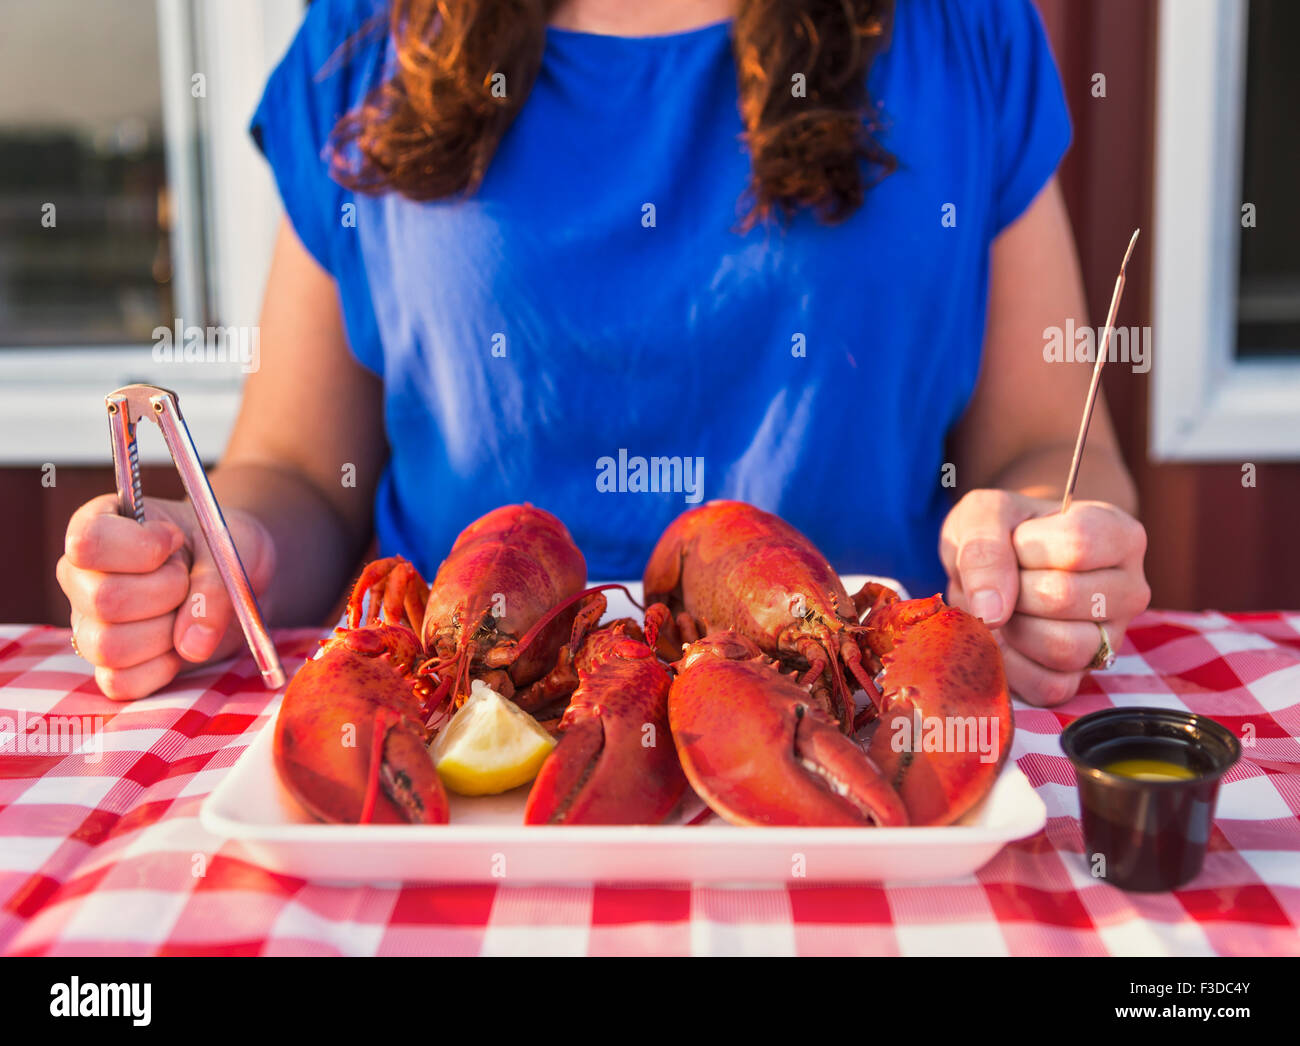 View of table with lobster meal and woman preparing to eat - Stock Image